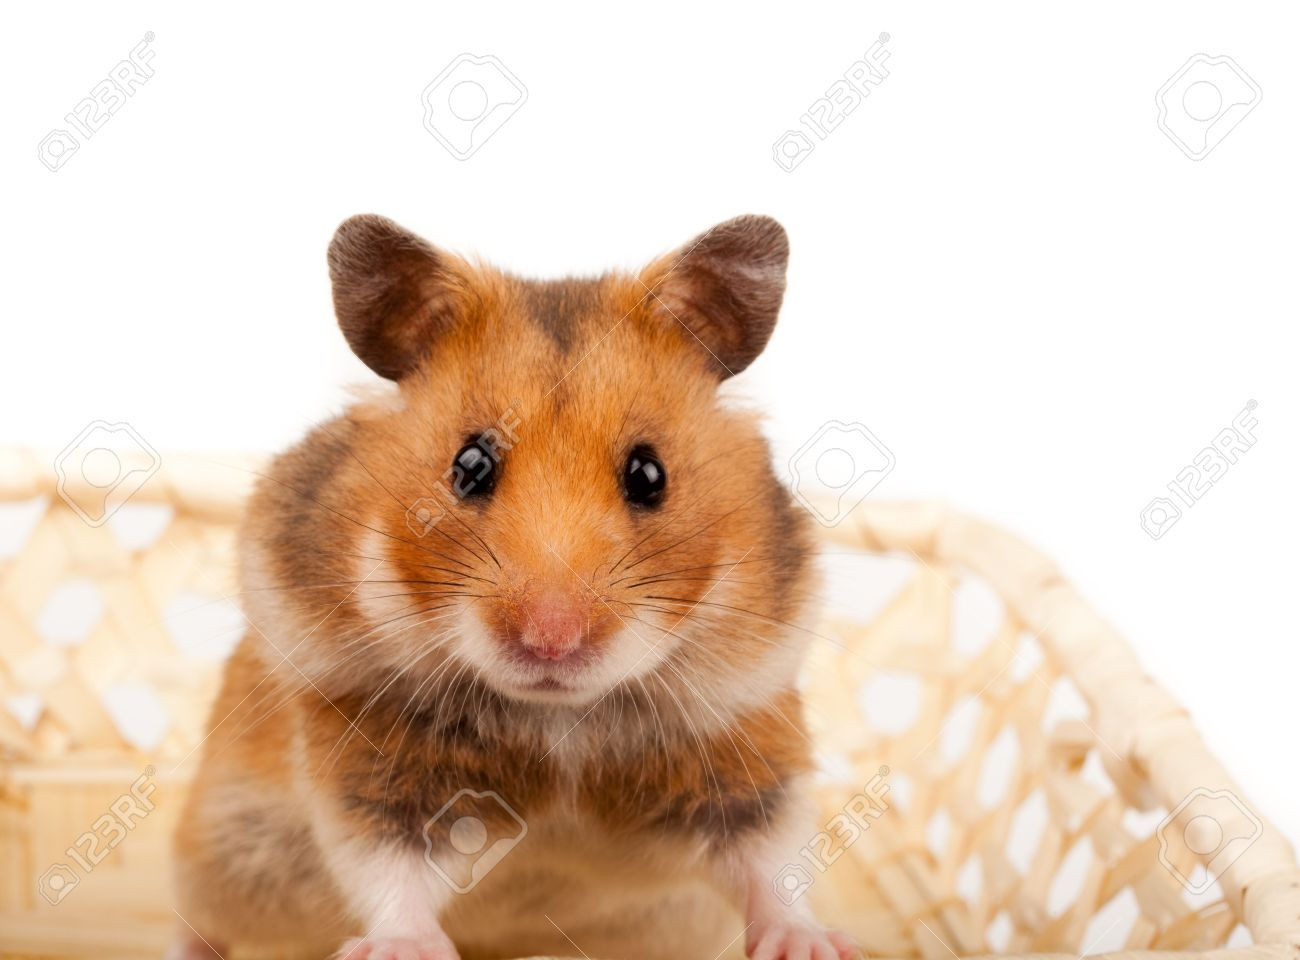 Goldhamster (Mesocricetus auratus) in studio against a white background. Stock Photo - 6479331